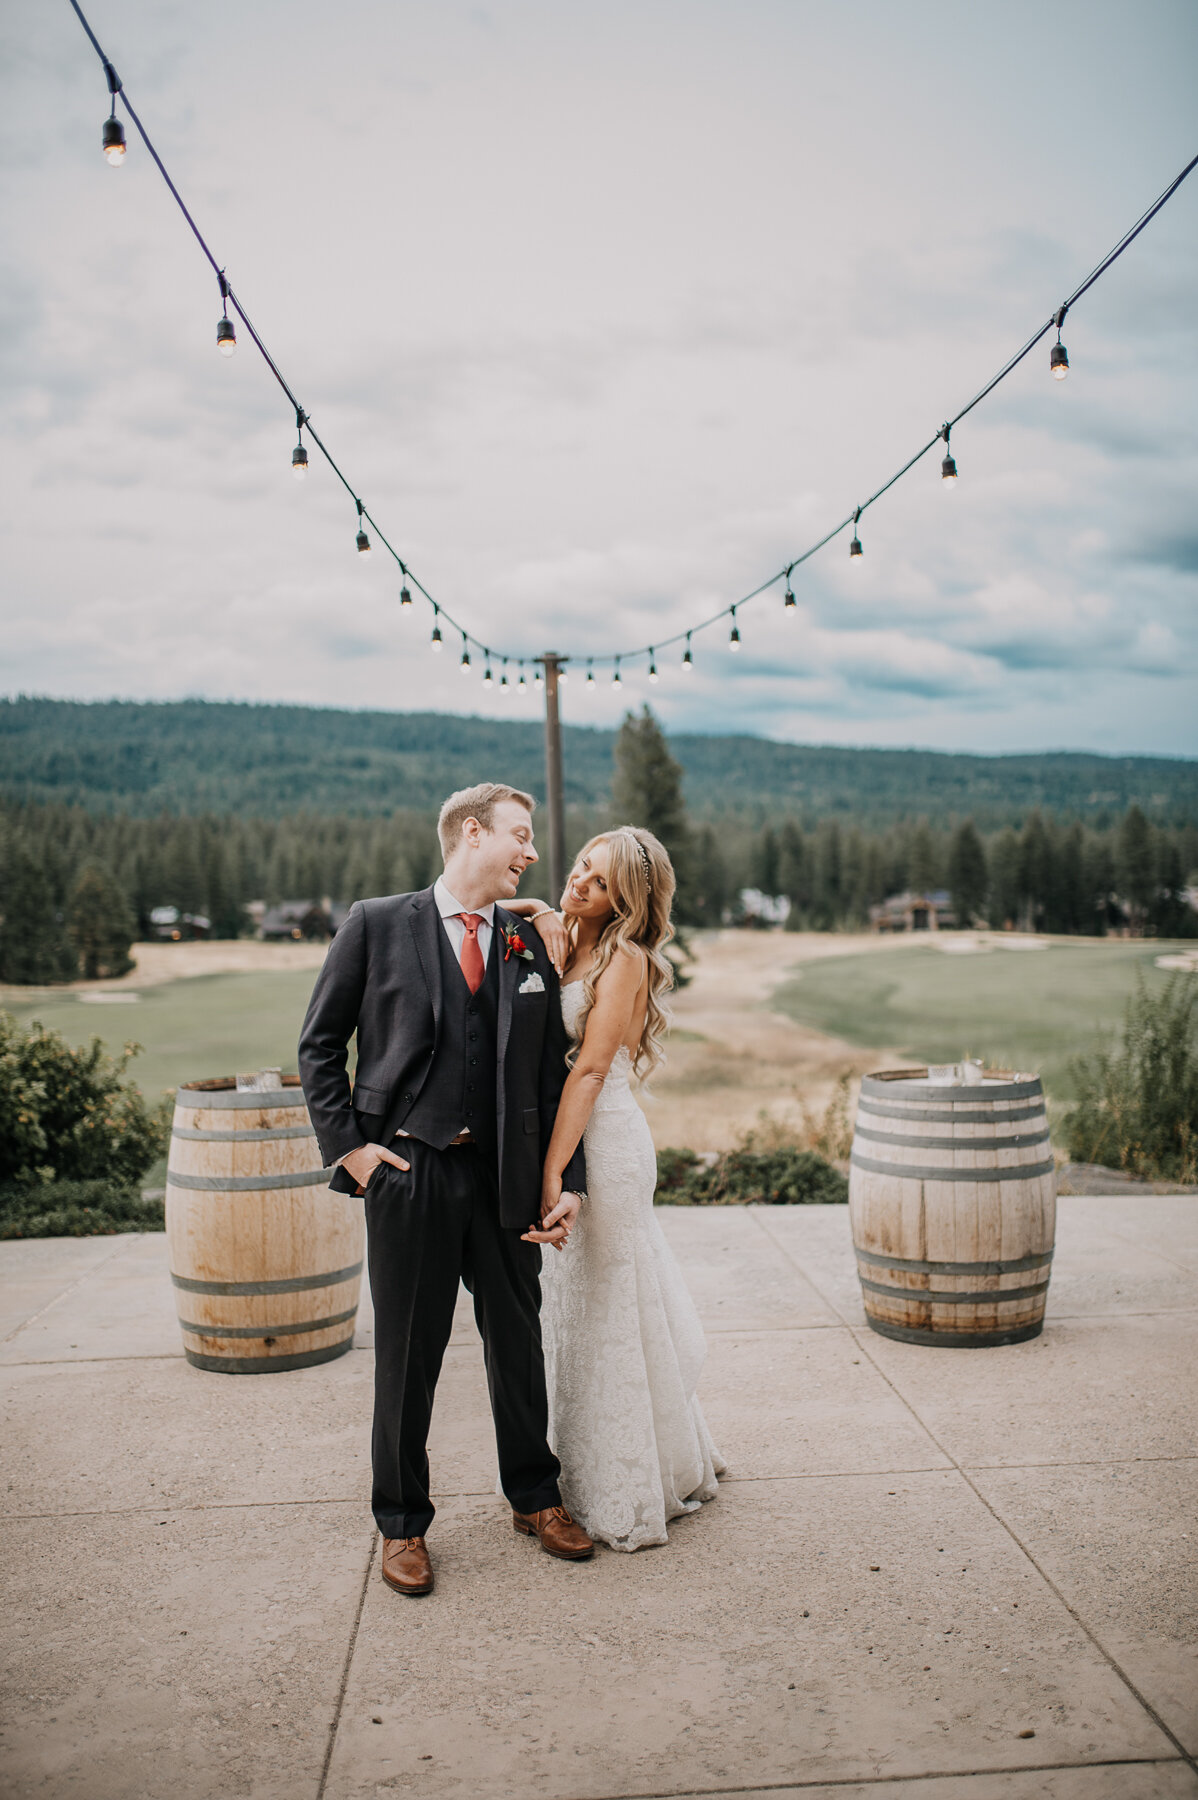 0982Swiftwater Cellars Wedding_Cle Elum Wedding_Montana Wedding Photographer_Kat & Kyle_September 15, 2018-274.jpg